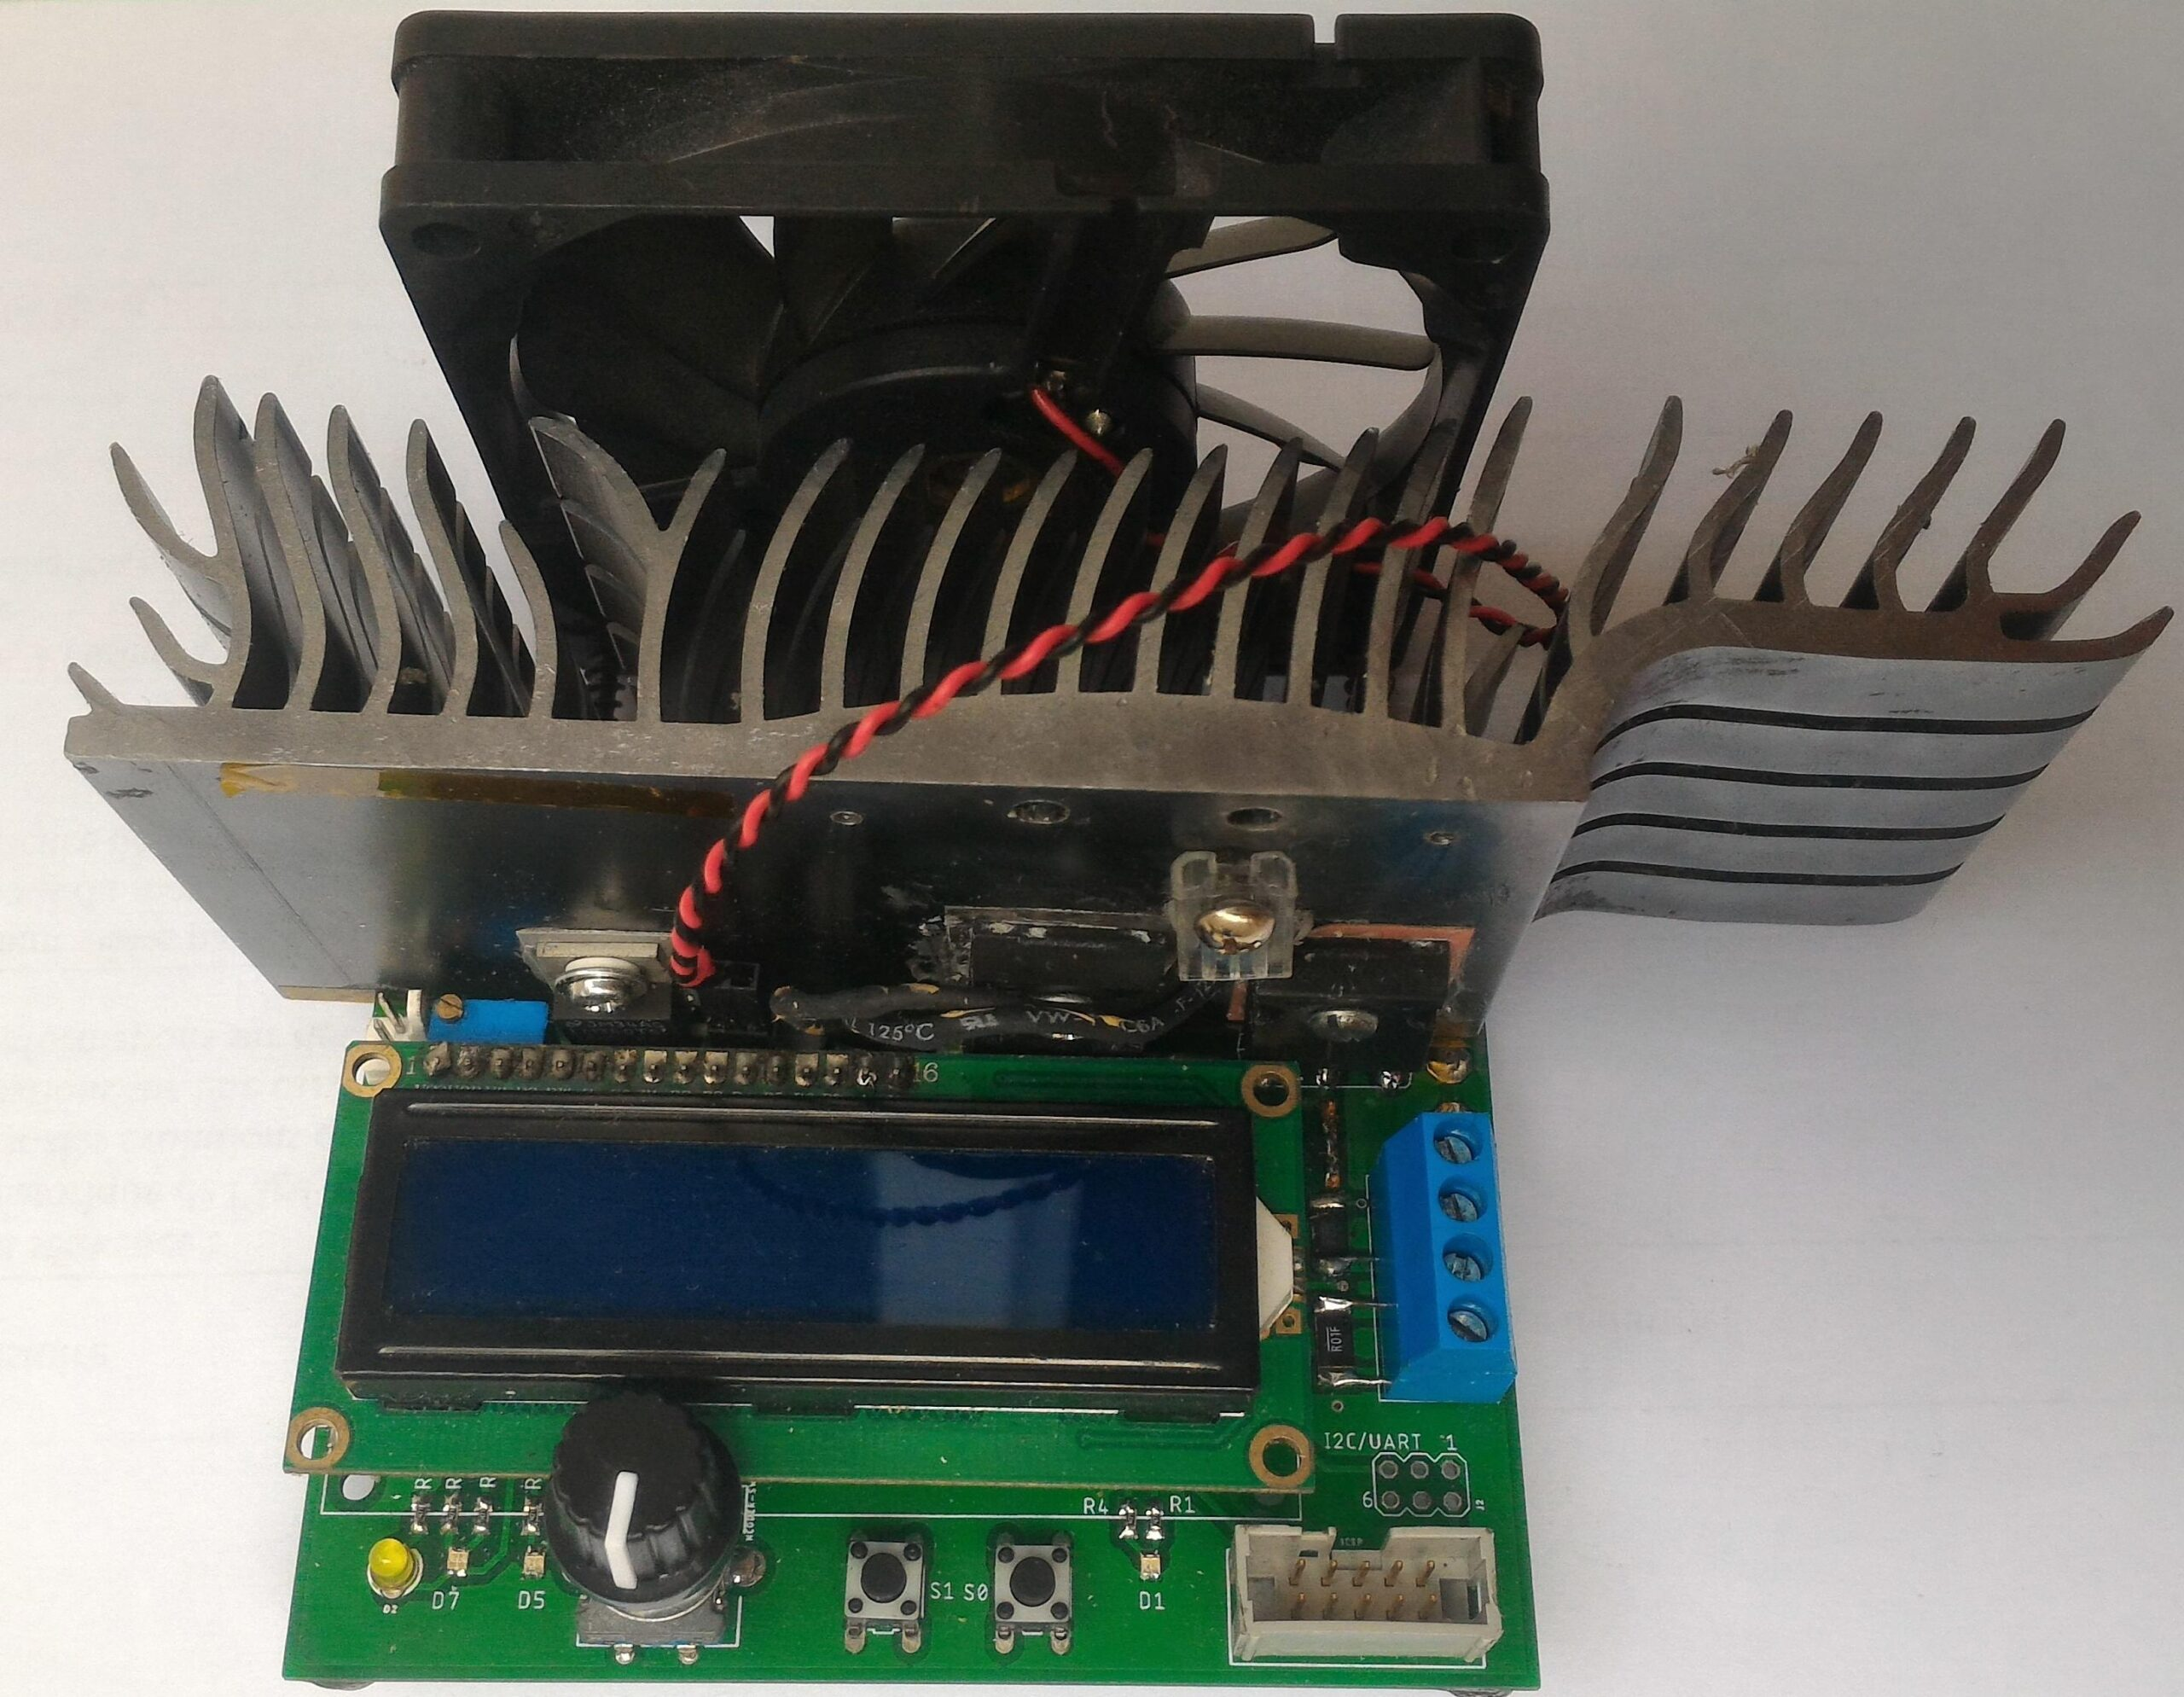 A DIY Electronic load for DC-DC converter characterization